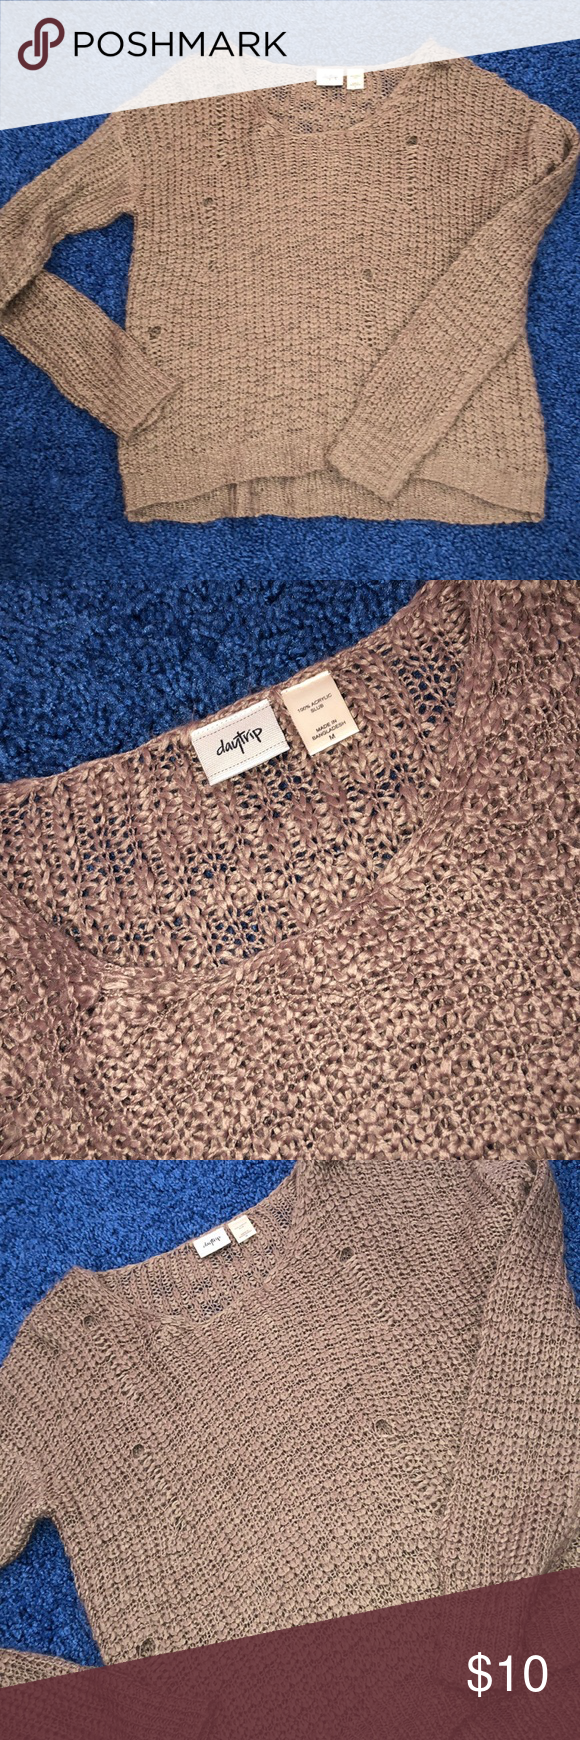 MEDIUM Ripped Daytrip sweater Purchased at buckle. Size medium. $10 Daytrip Sweaters